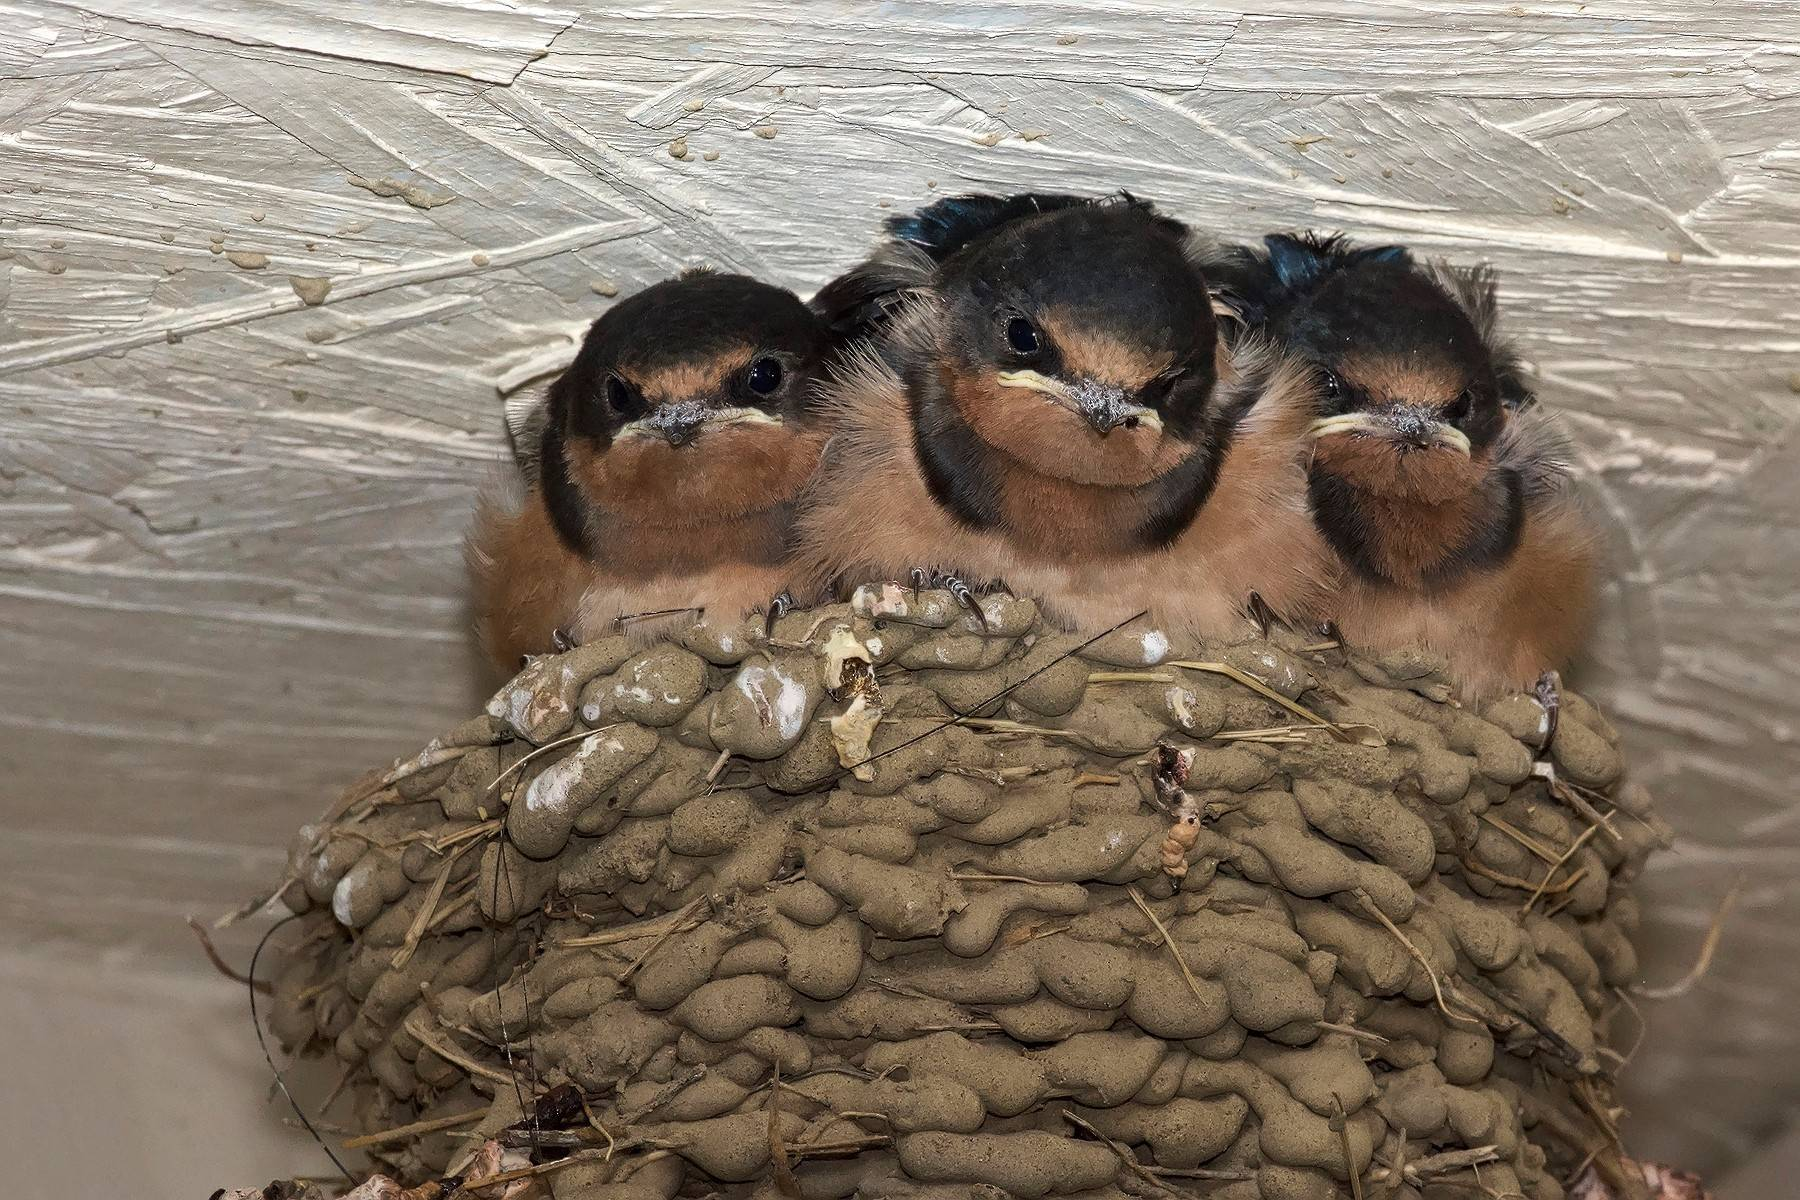 Barn swallow nests are an architectural wonder. During construction, a mated pair might make 1,000 trips to gather mud in their bills. The mud balls are reinforced with grass to add strength.